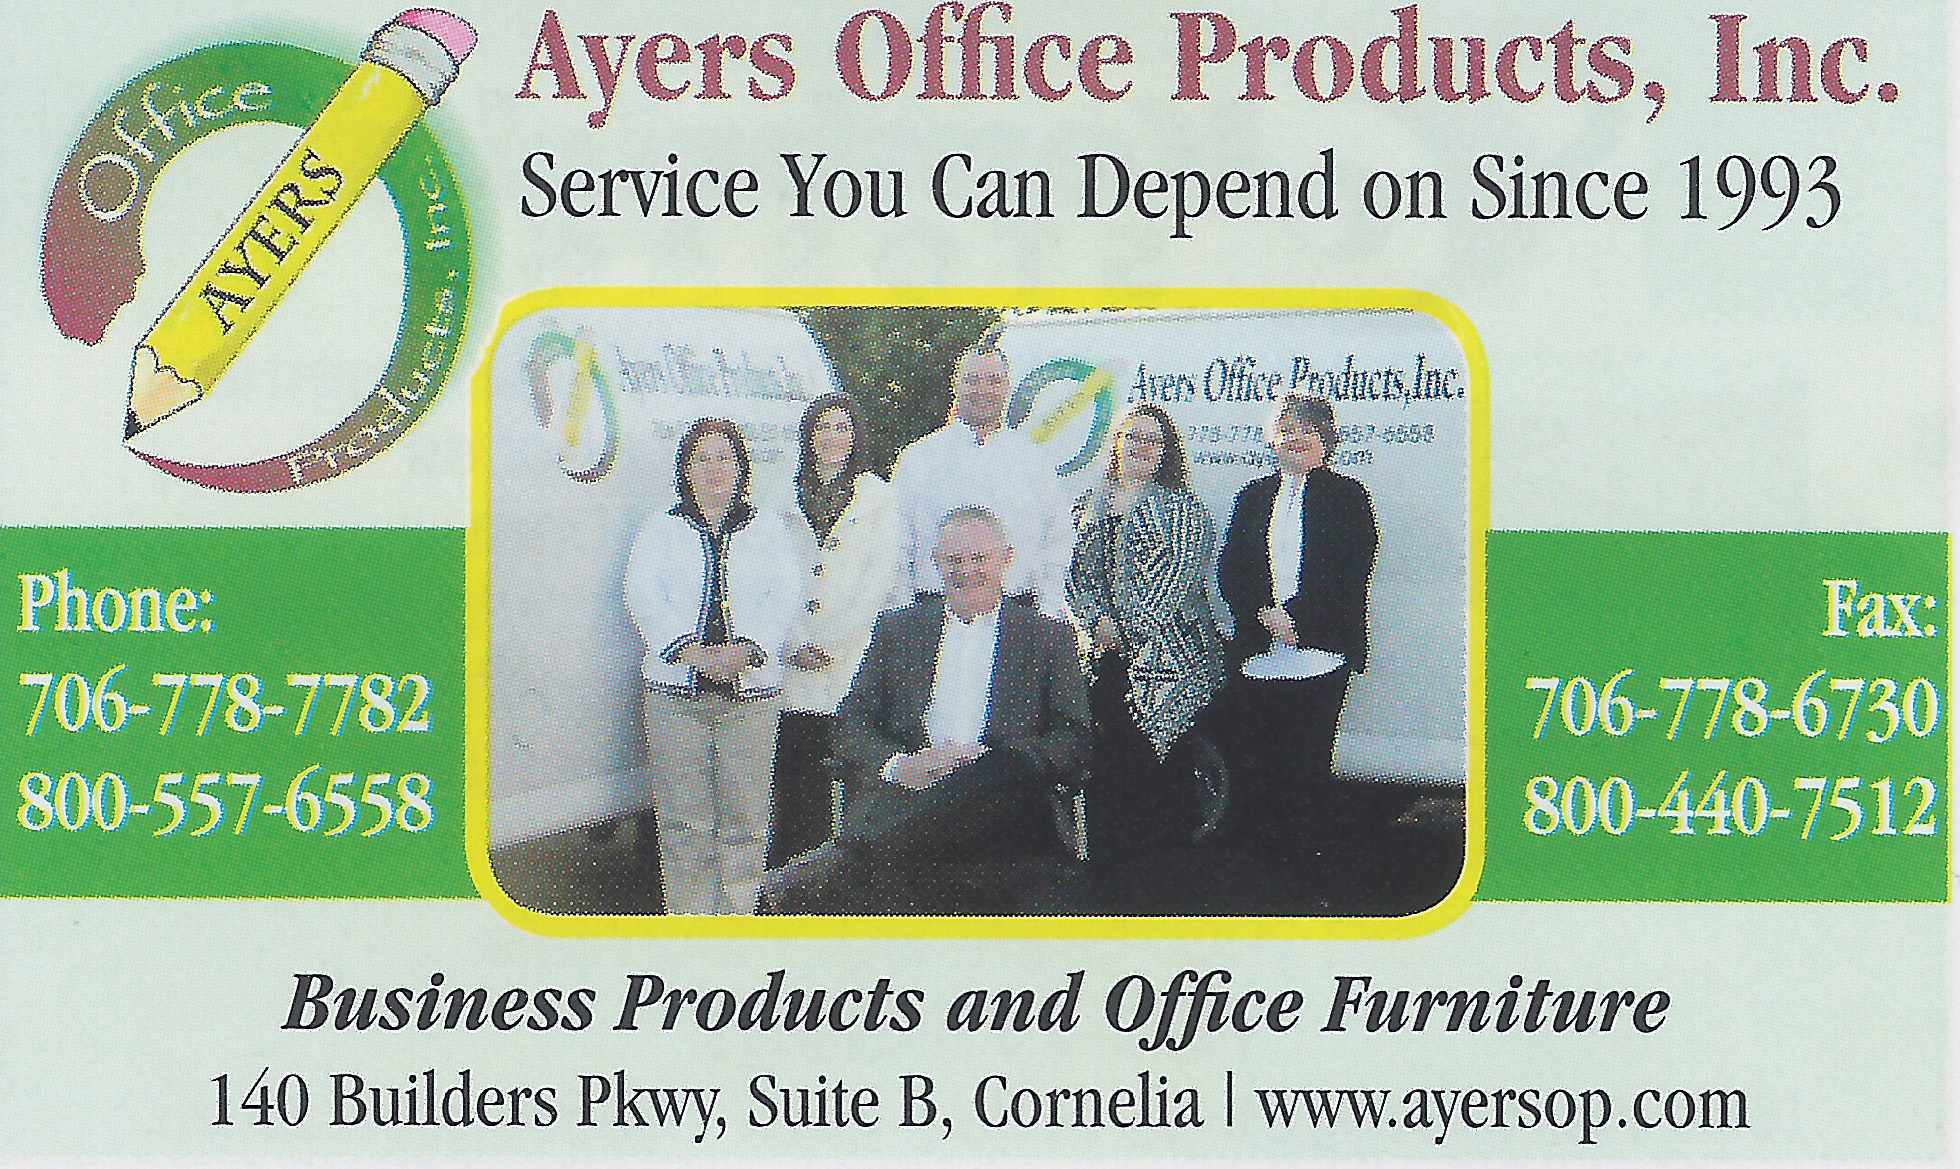 Ayers Office Products